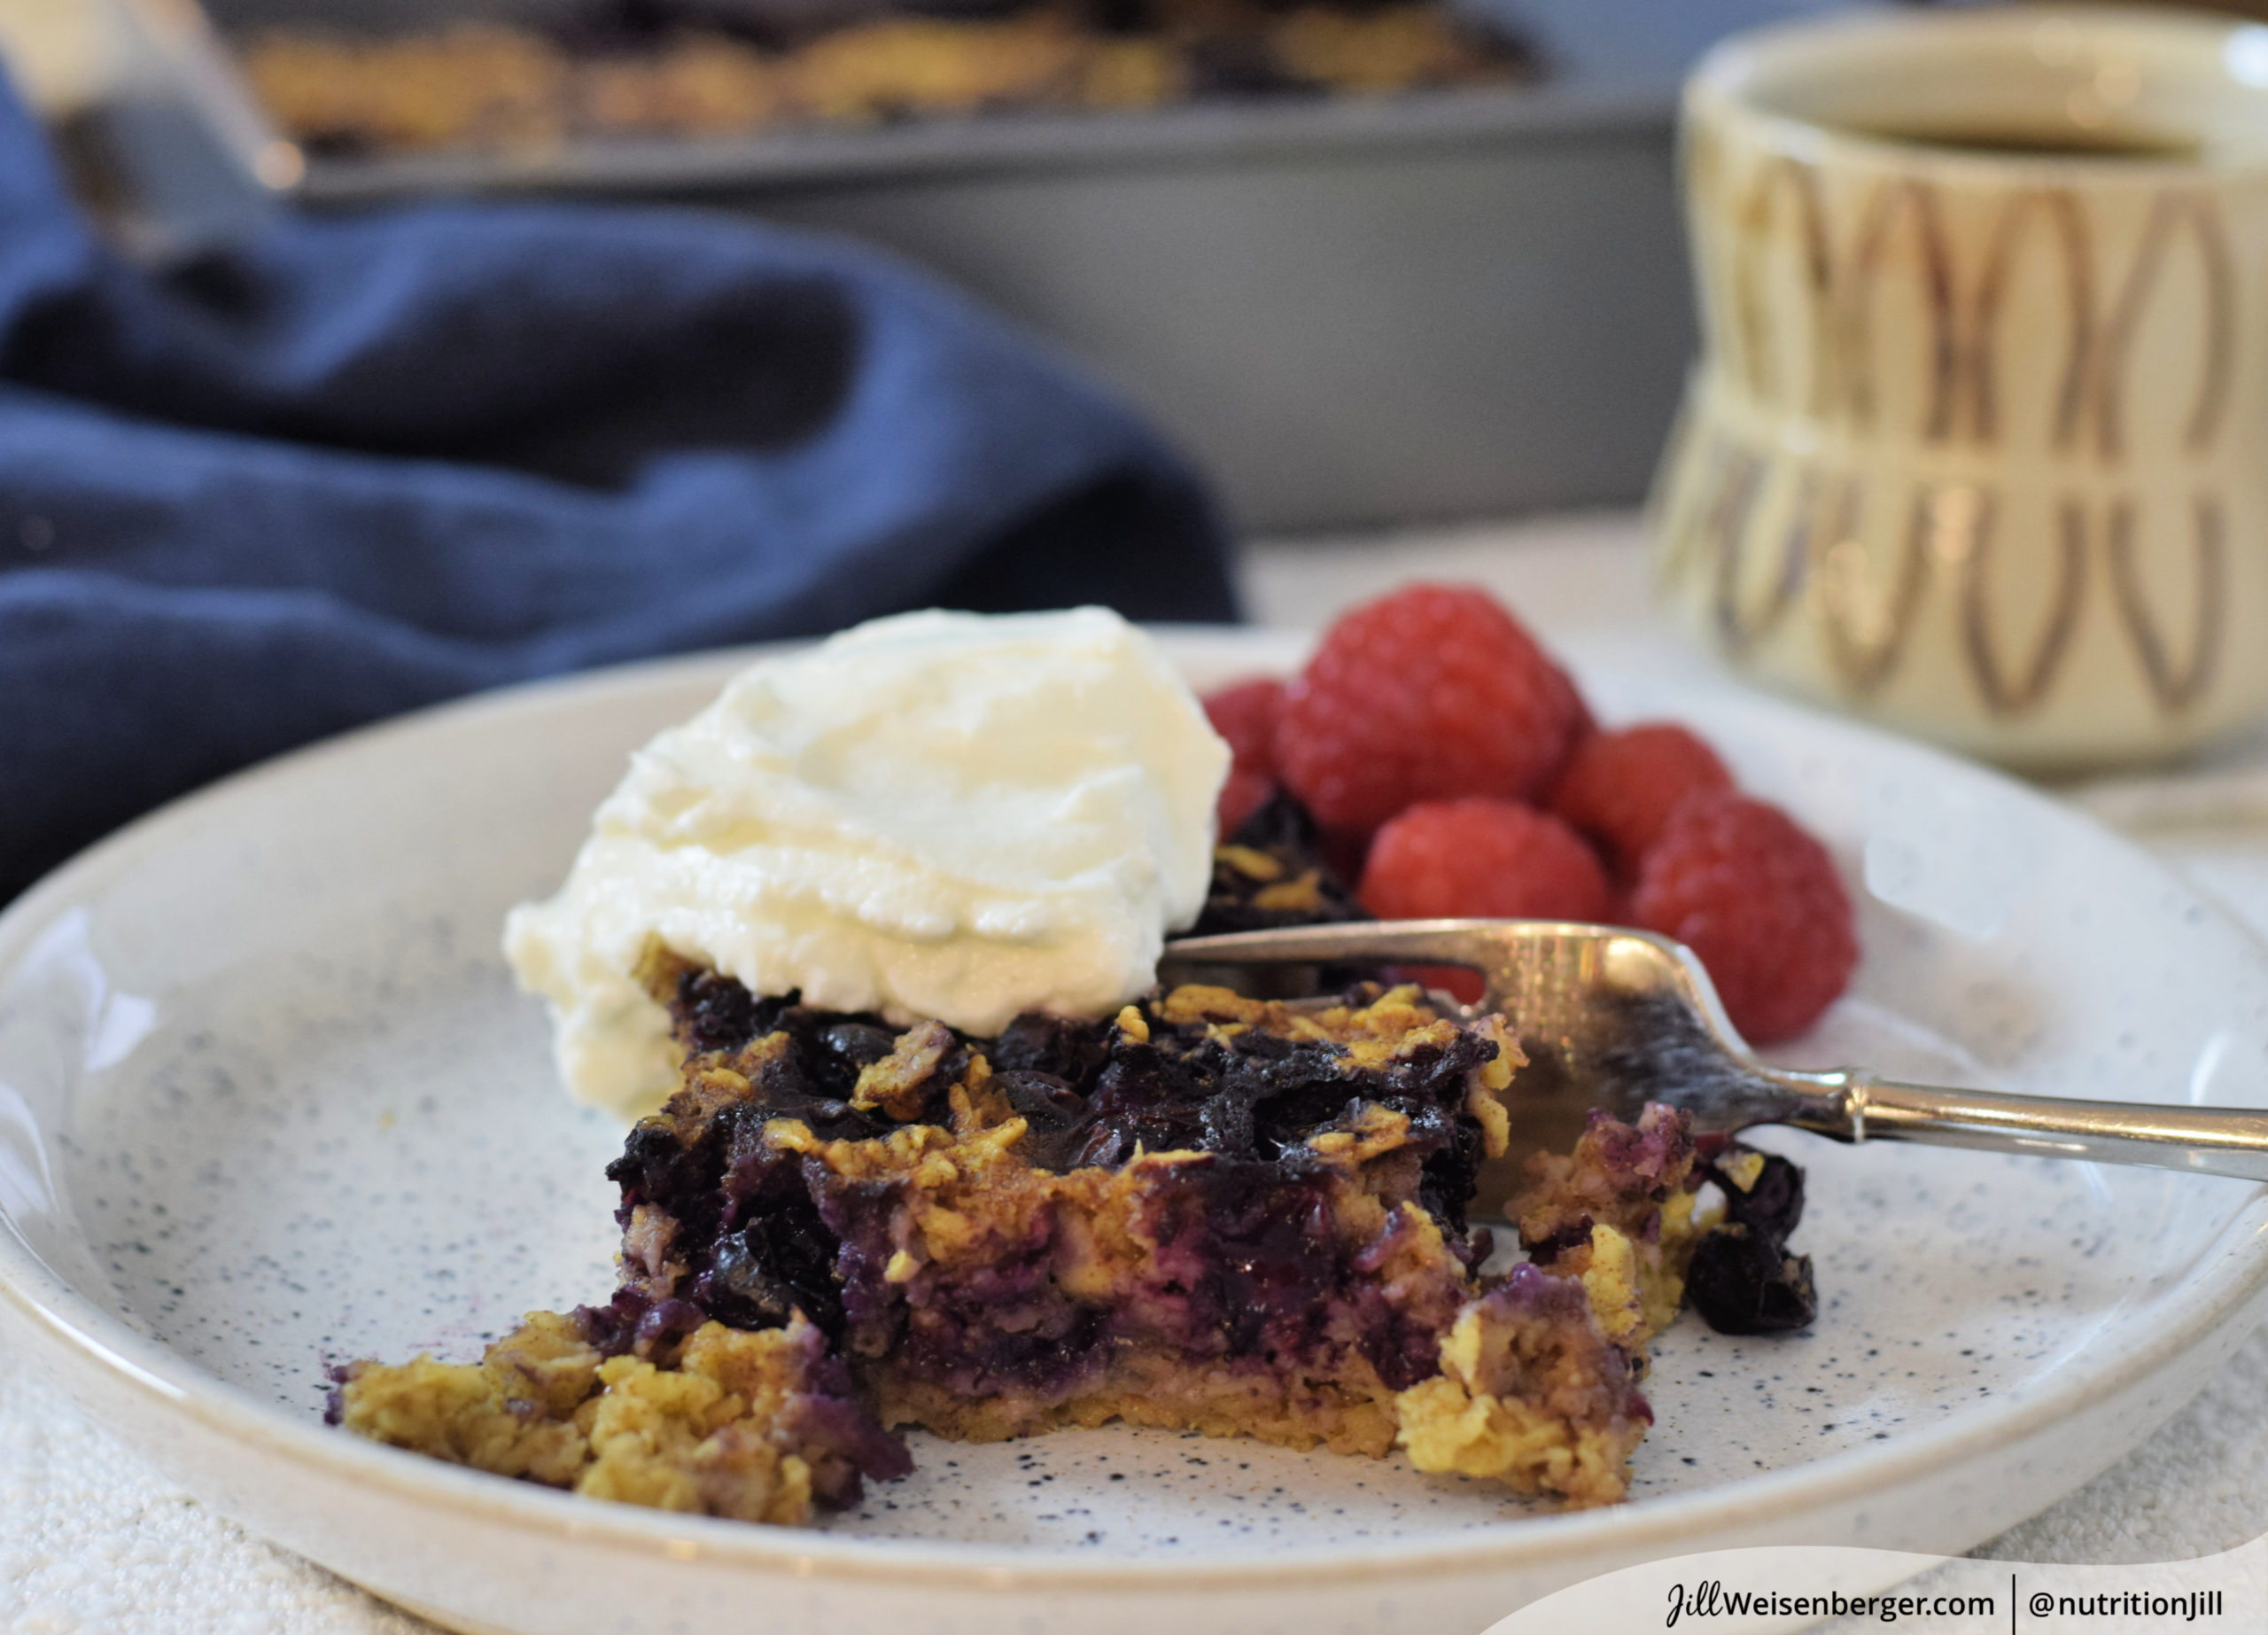 blueberry baked oatmeal recipe on plate with fork